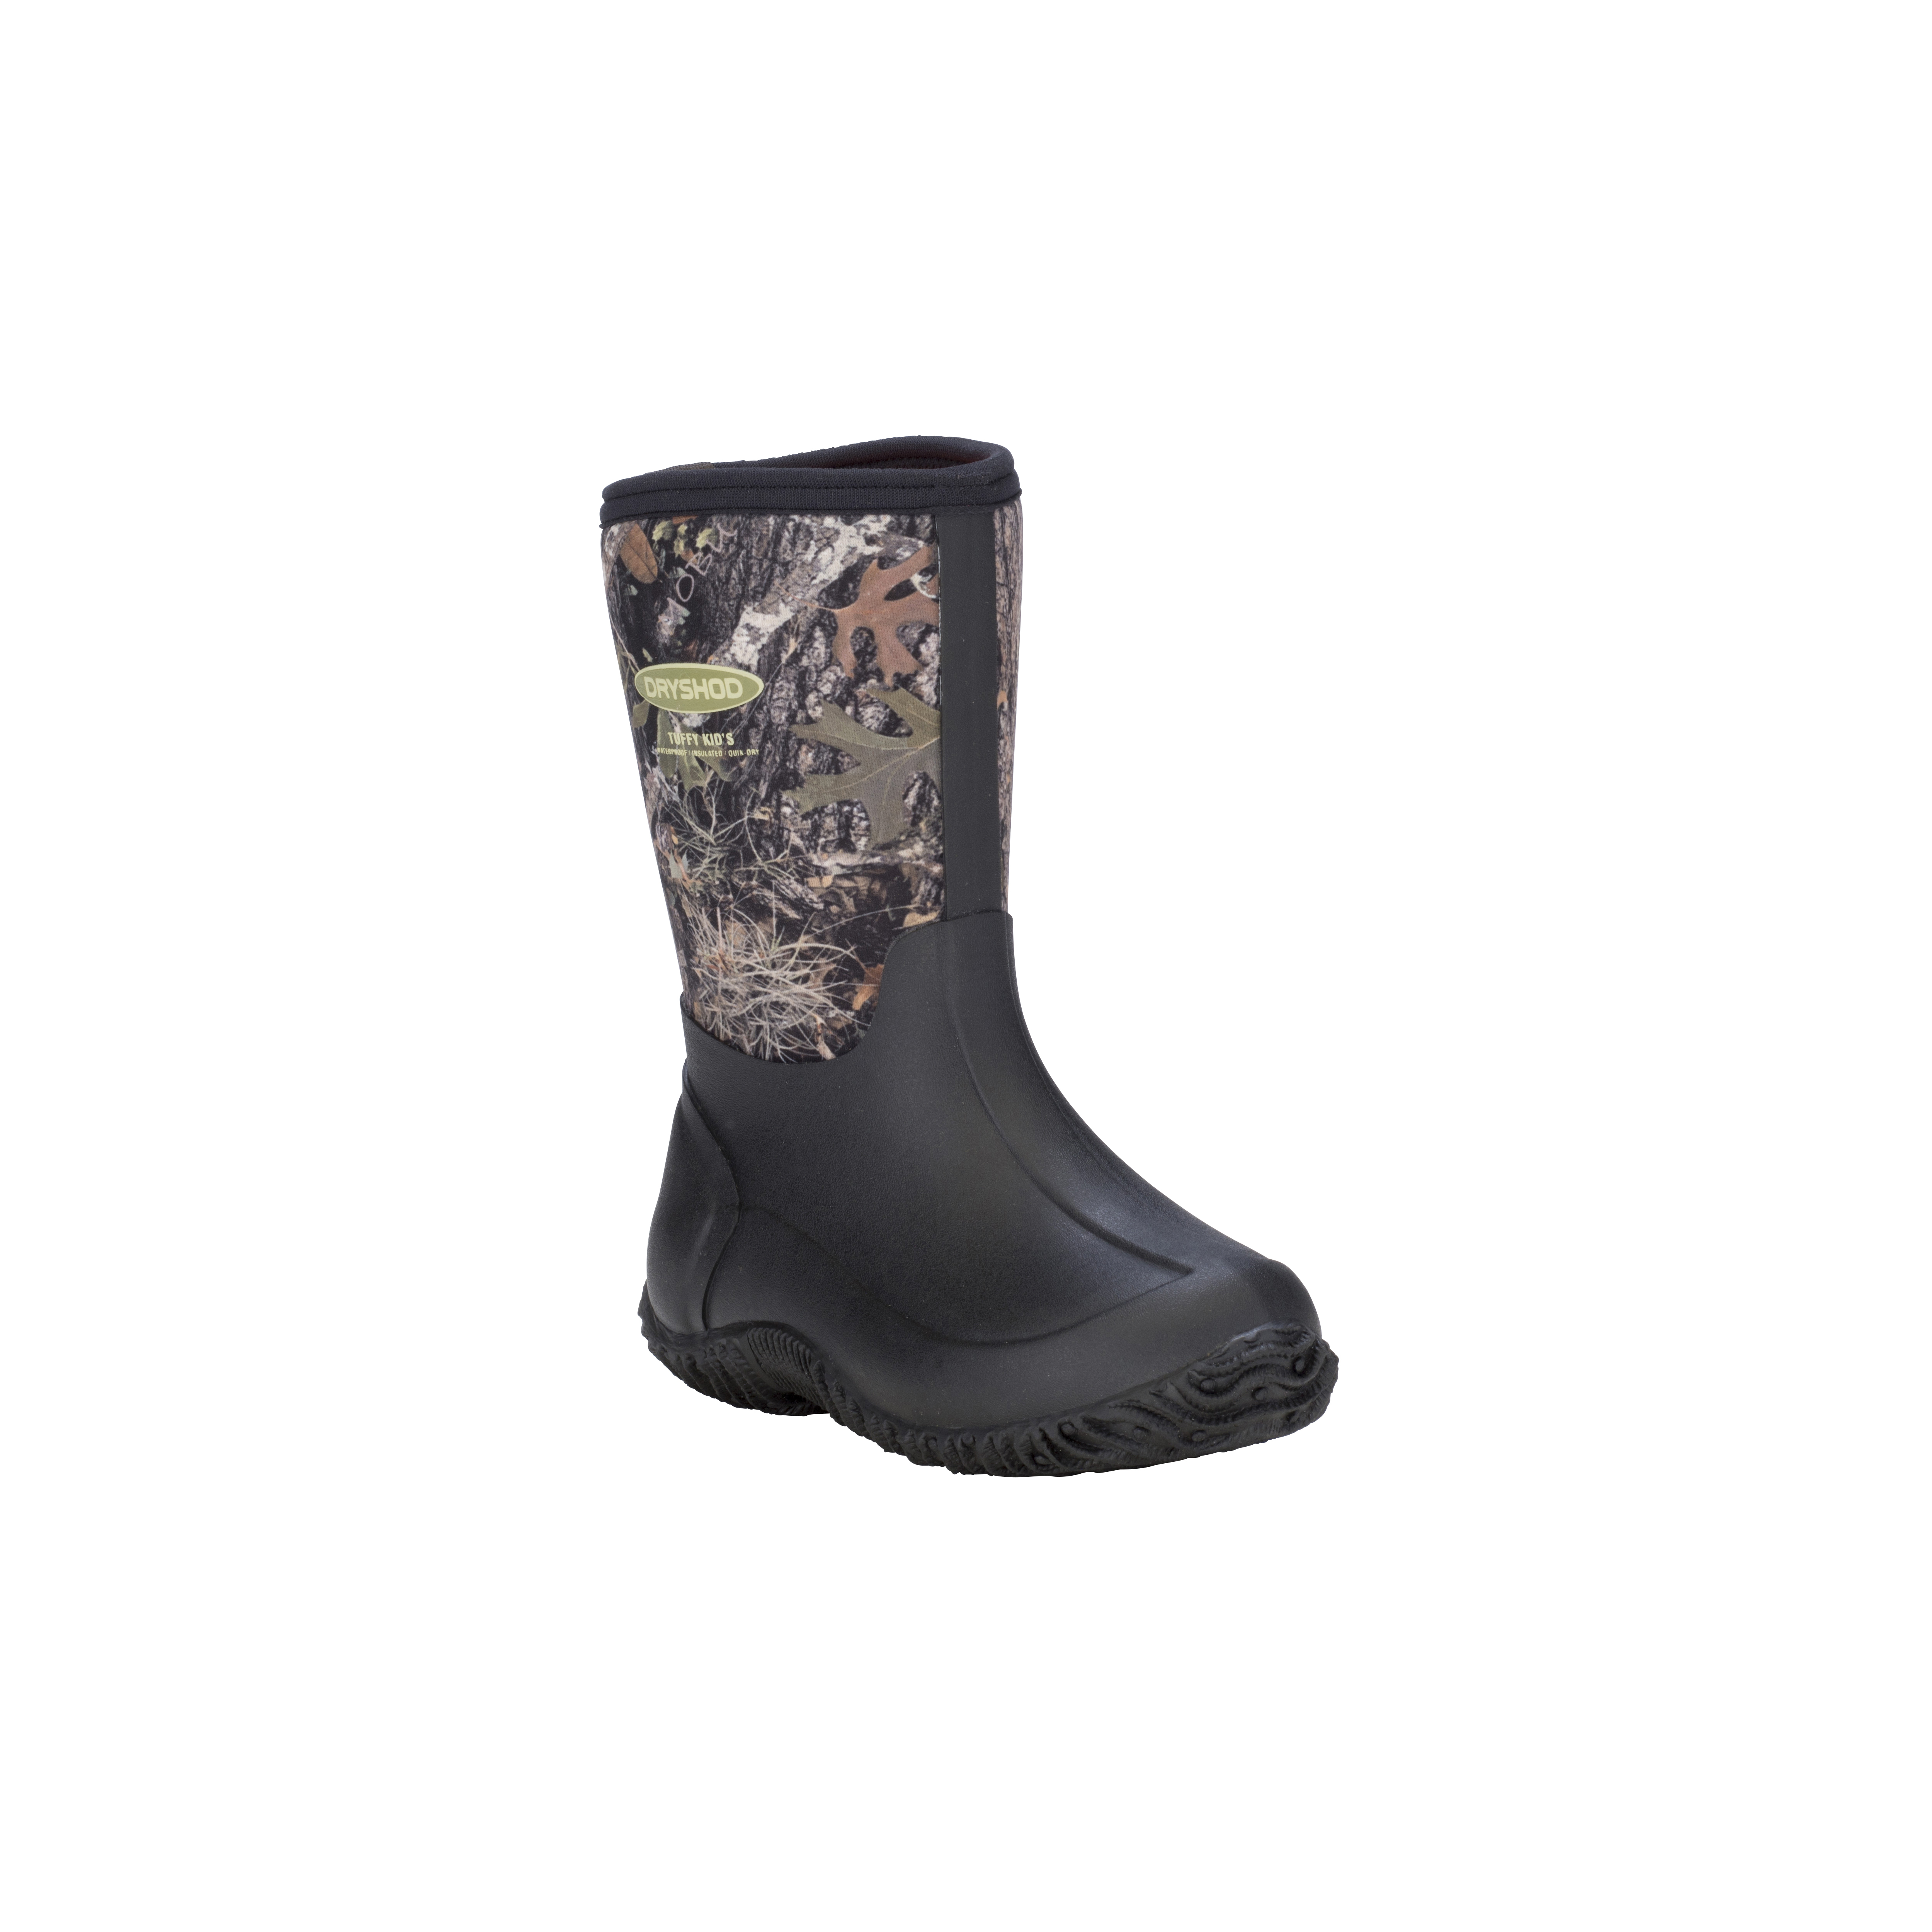 Dryshod Kids' Tuffy All Season Sport Boots - Mid/Hi Cut - Size Y5, Camo/Timber